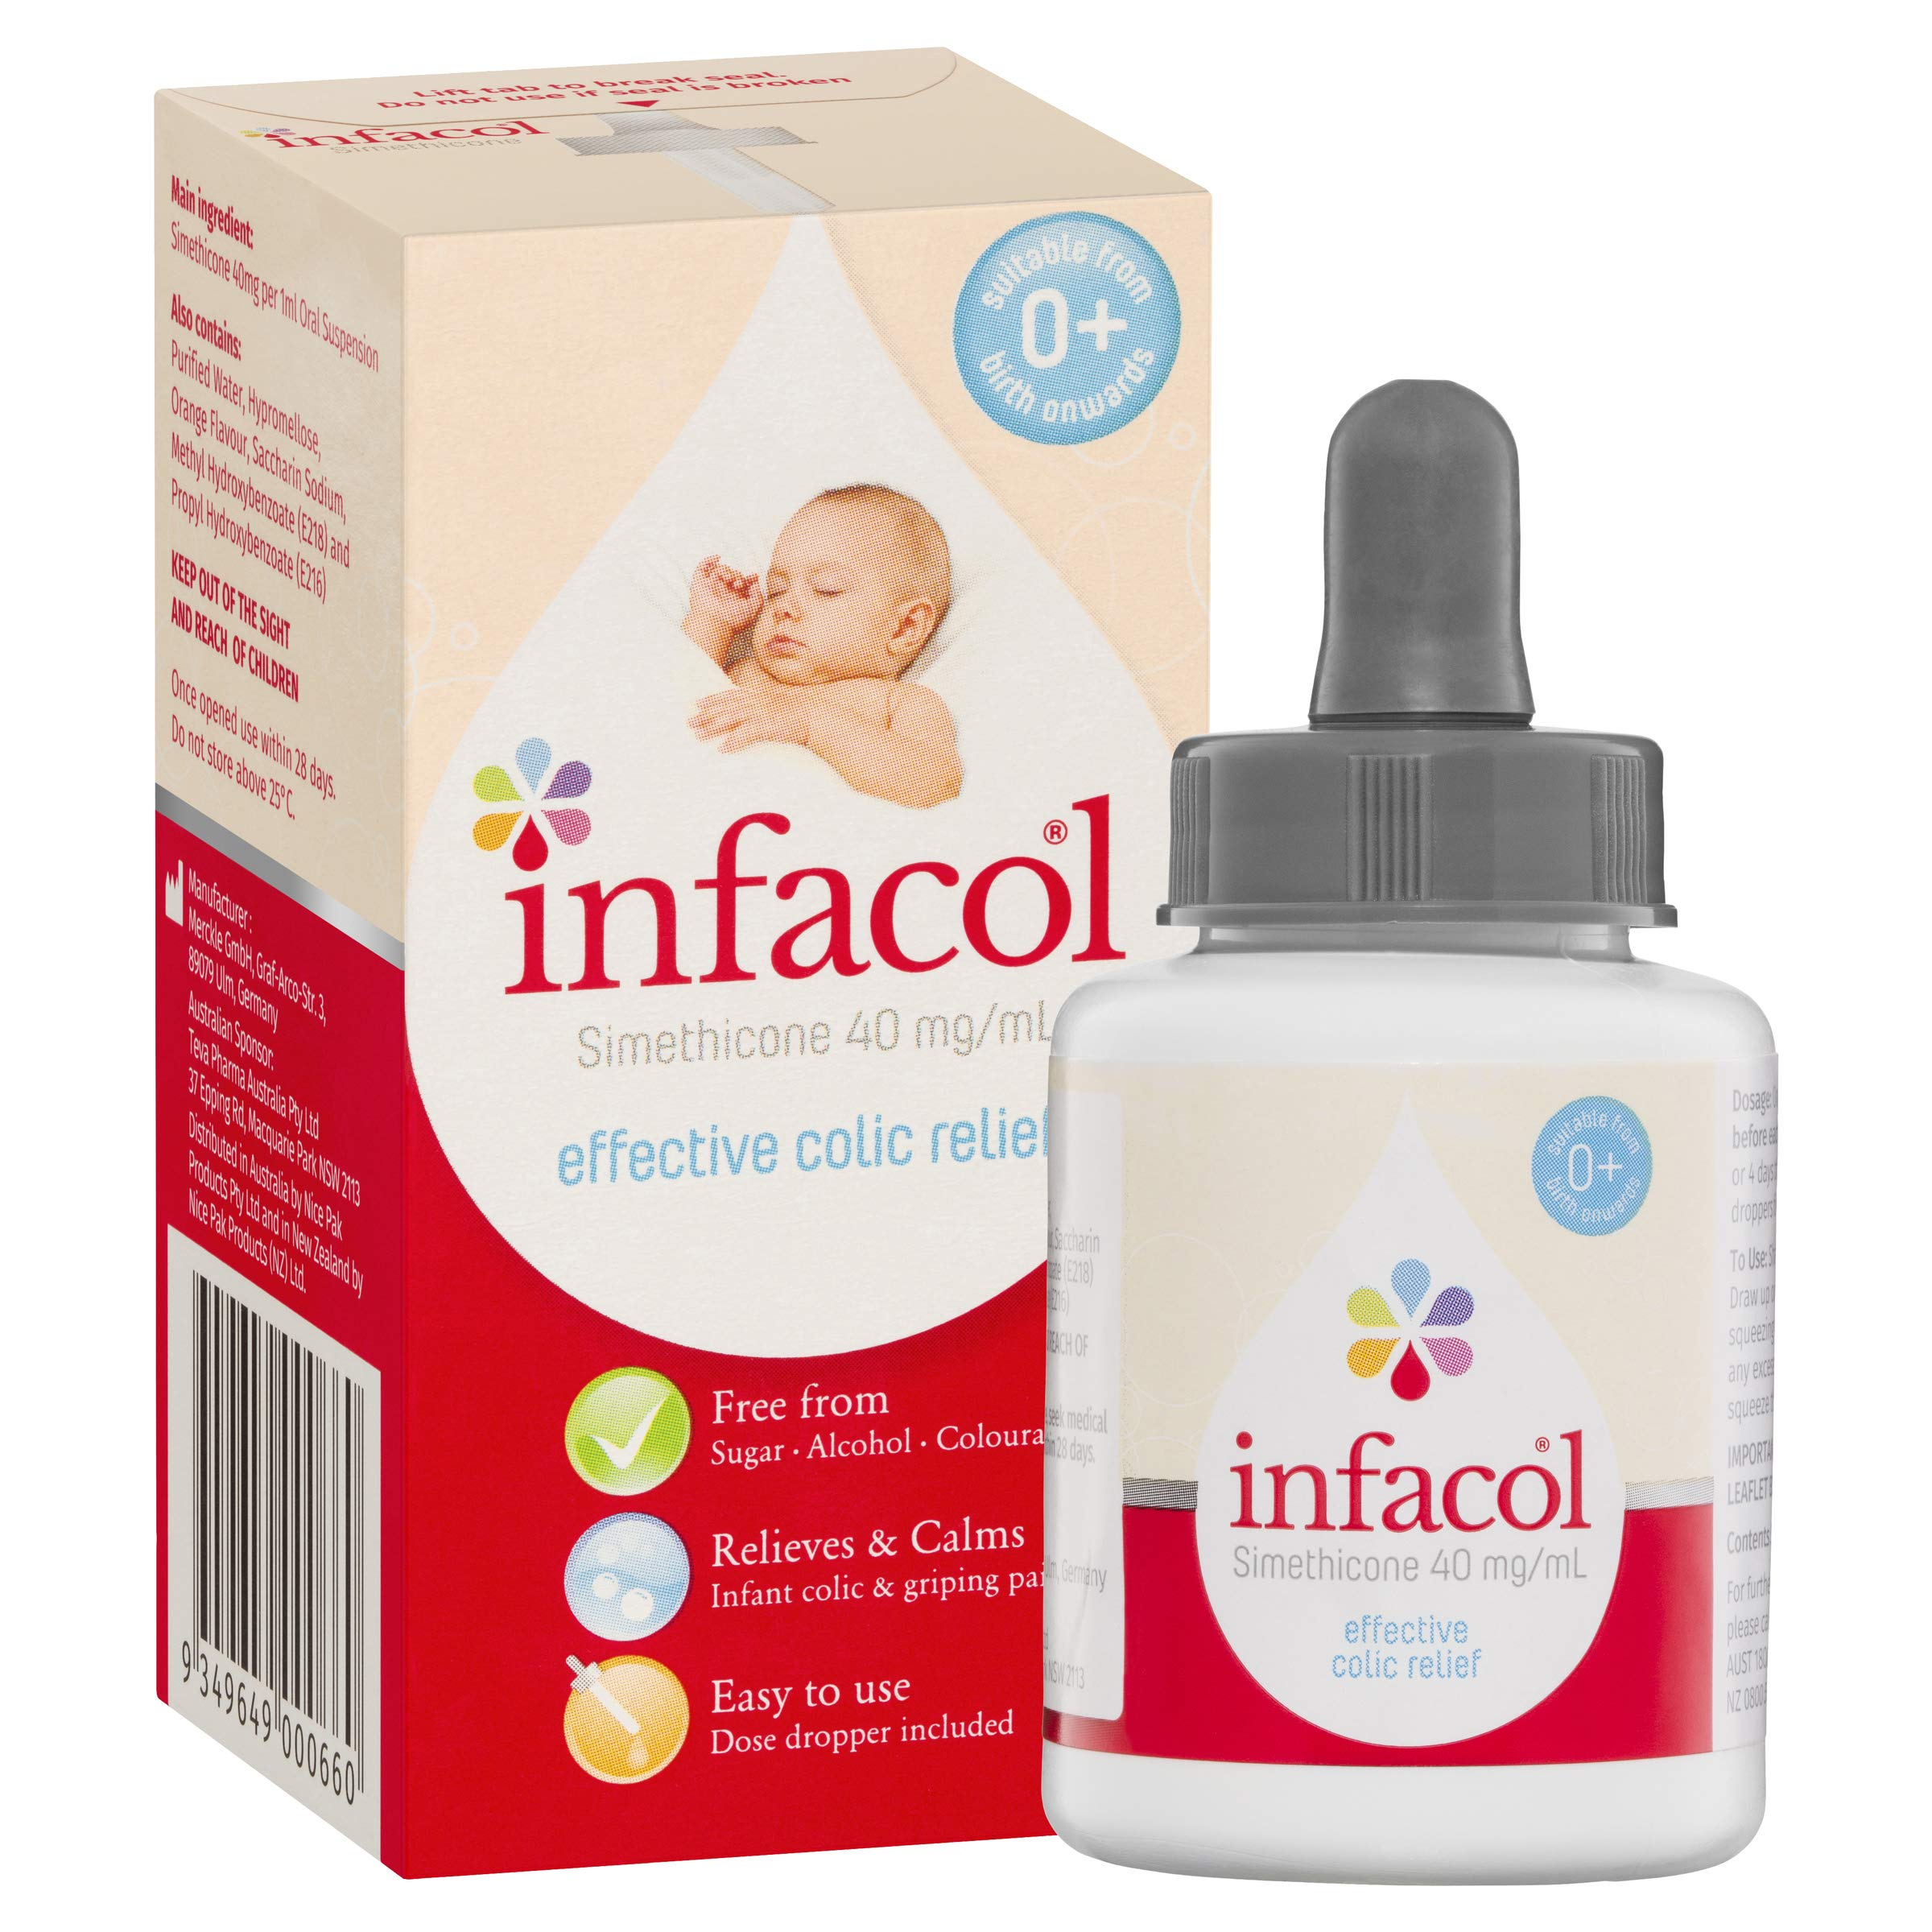 Infacol 50 ml Colic Relief Drops